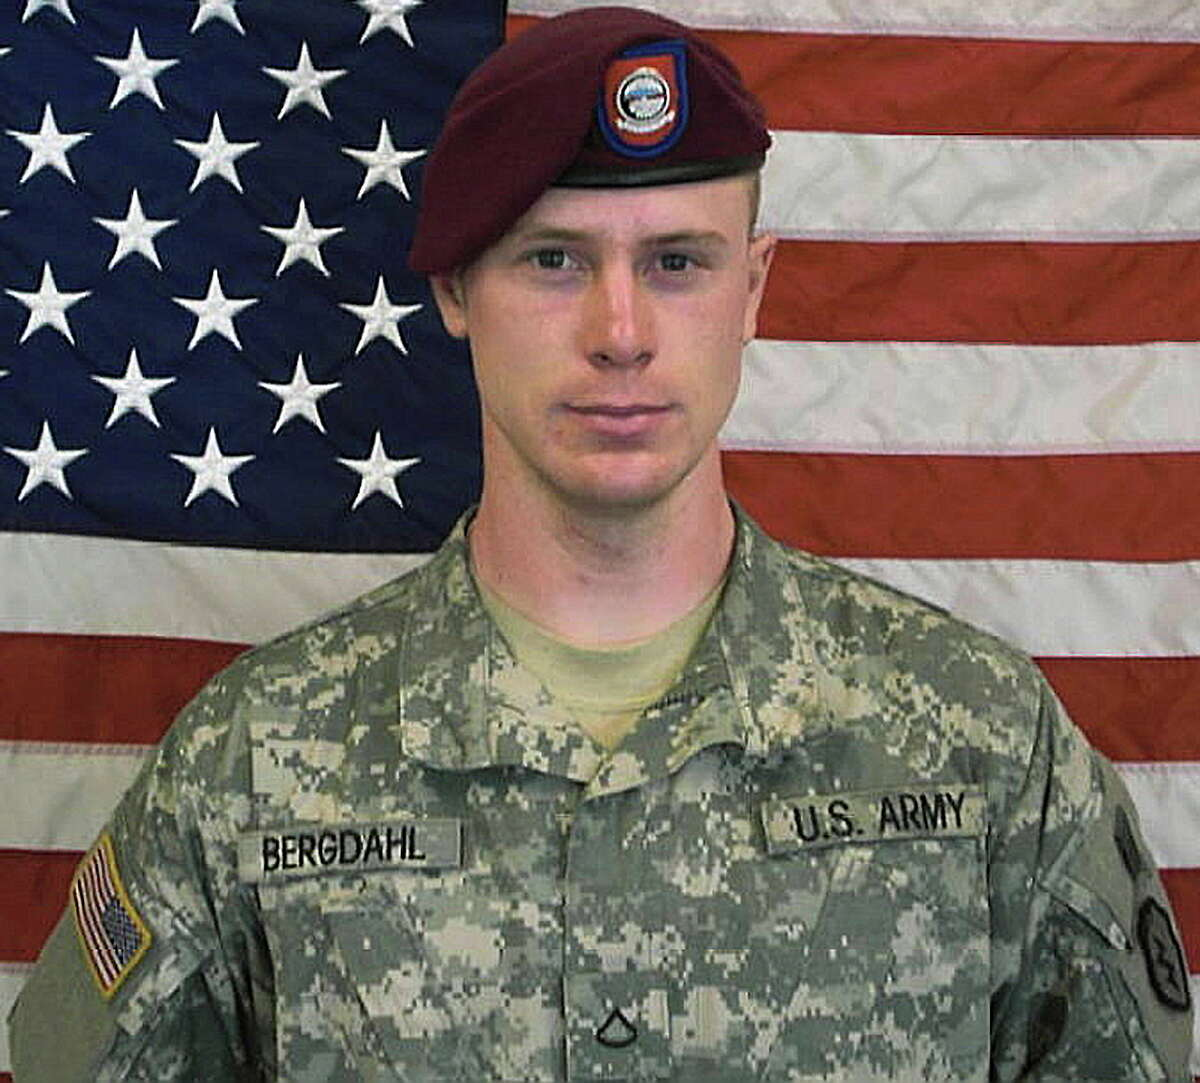 Sgt. Bowe Bergdahl, who was traded for five Taliban leaders as a prisoner of war, is being represented by Yale Law School lecturer Eugene R. Fidell.